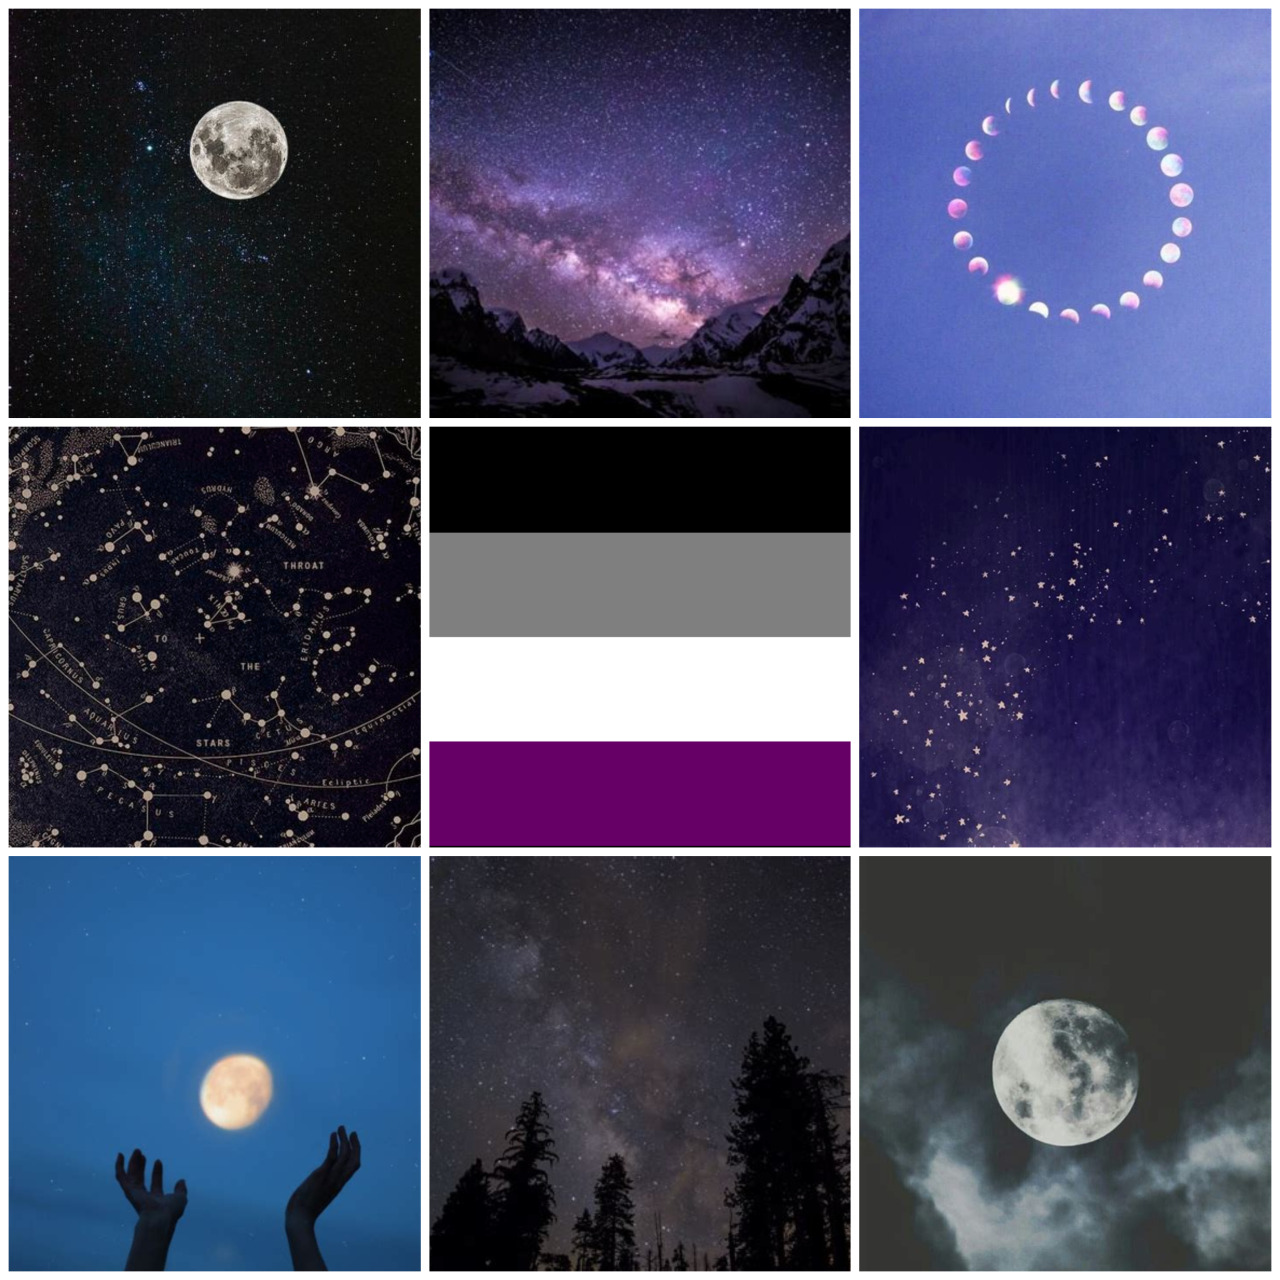 Moon and stars asexual moodboard for anon! Thank you for the request, I hope you like it :D #ace#ace moodboard#asexual#asexual moodboard#moon#moon aesthetic#stars#star aesthetic#lgbt#lgbt moodboard